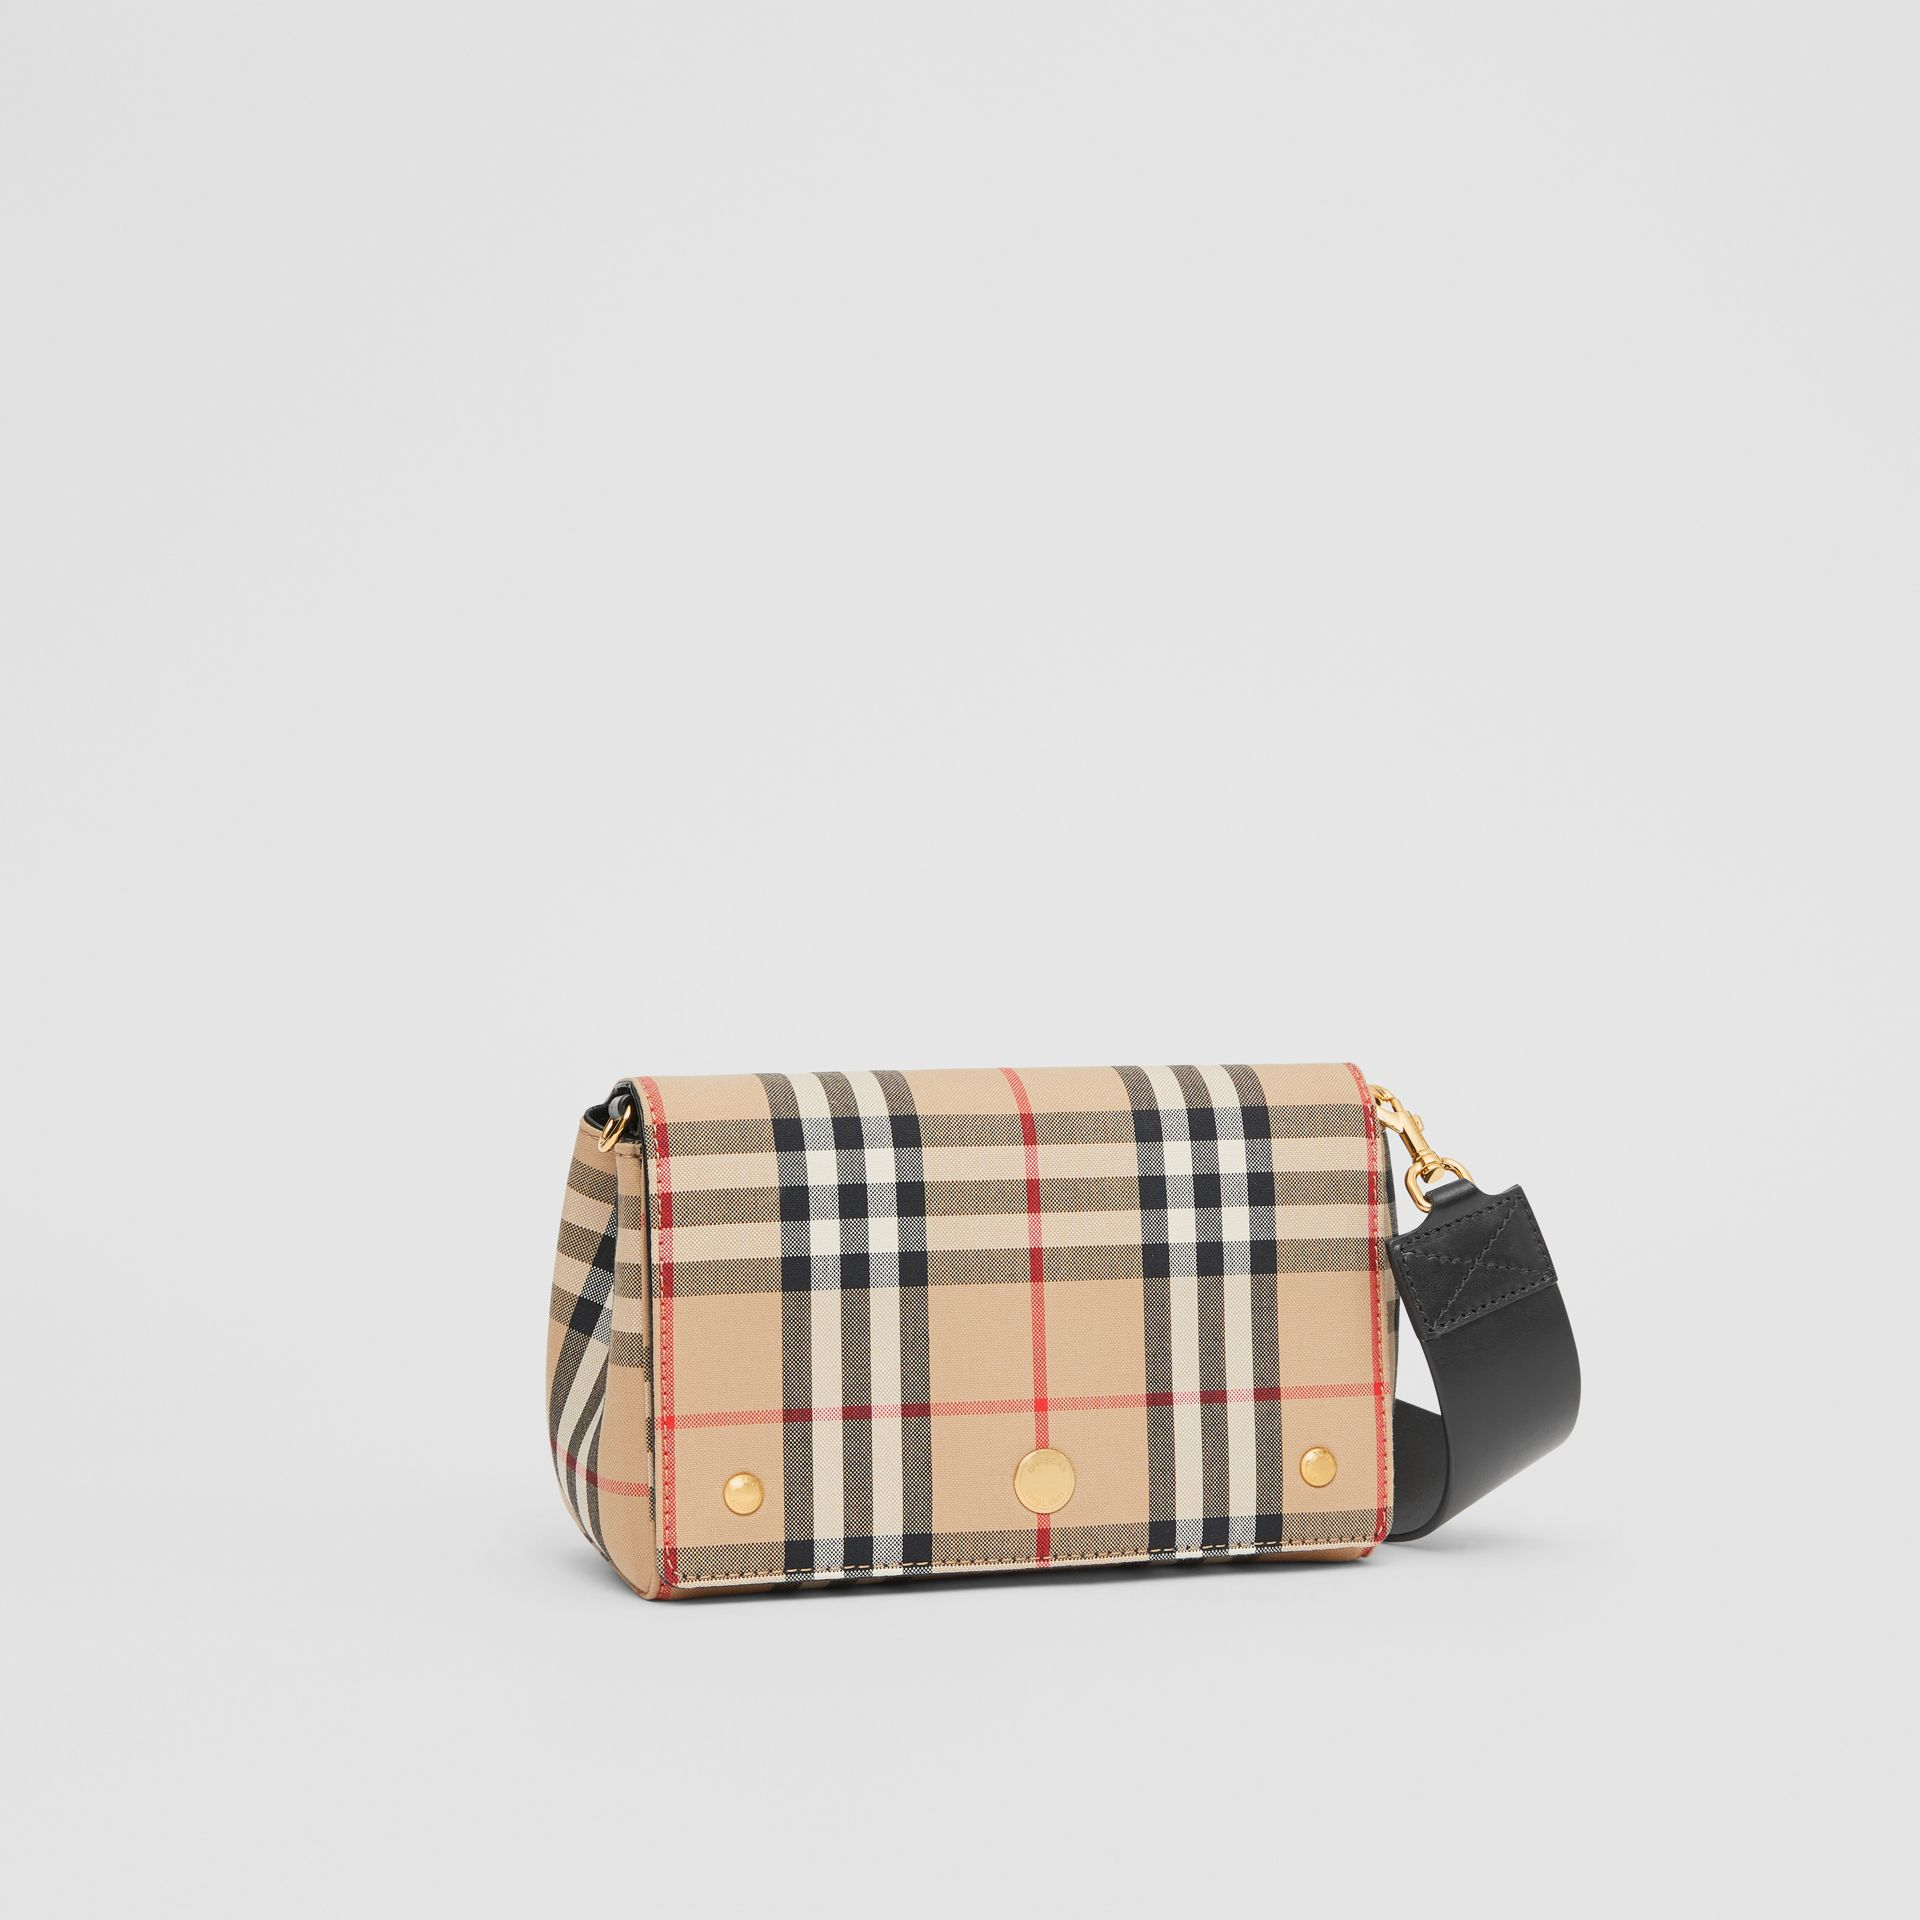 Small Vintage Check and Leather Crossbody Bag in Archive Beige/black | Burberry - gallery image 6